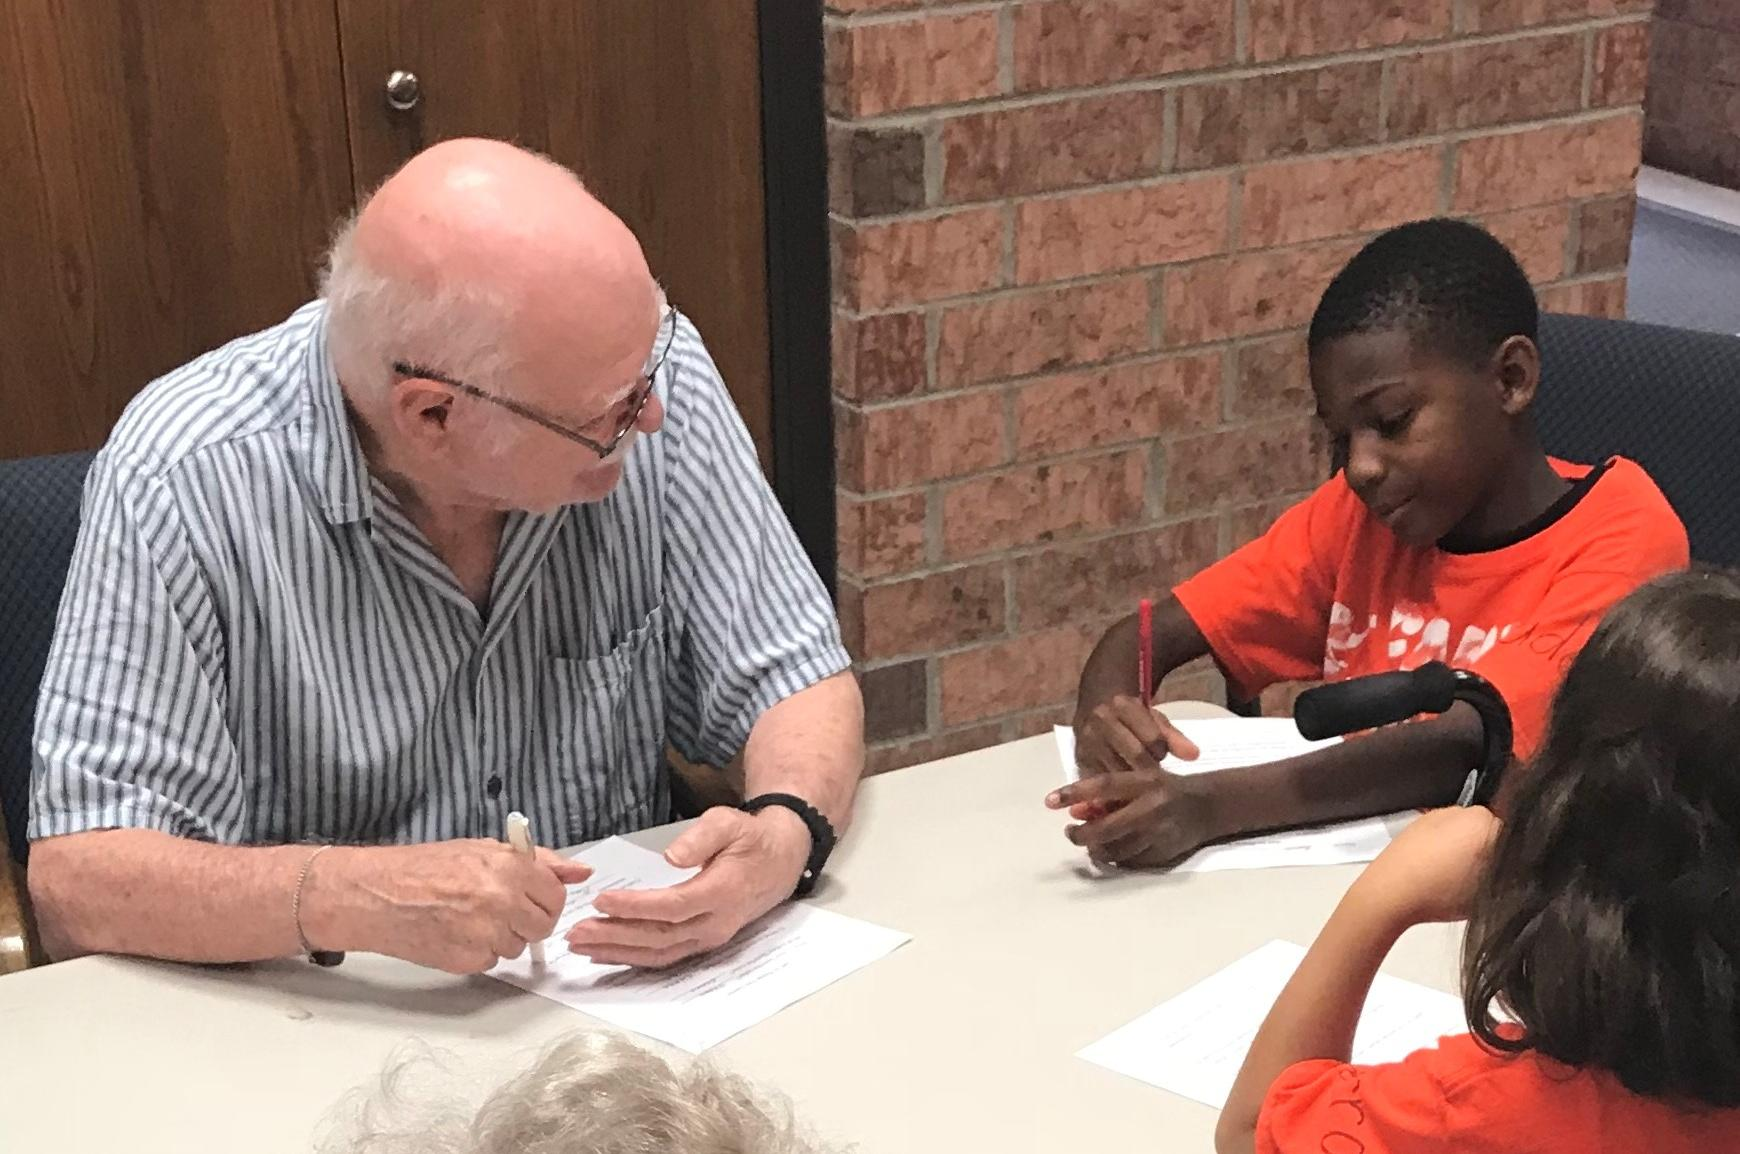 An older adult and child participate in the Get WISE program